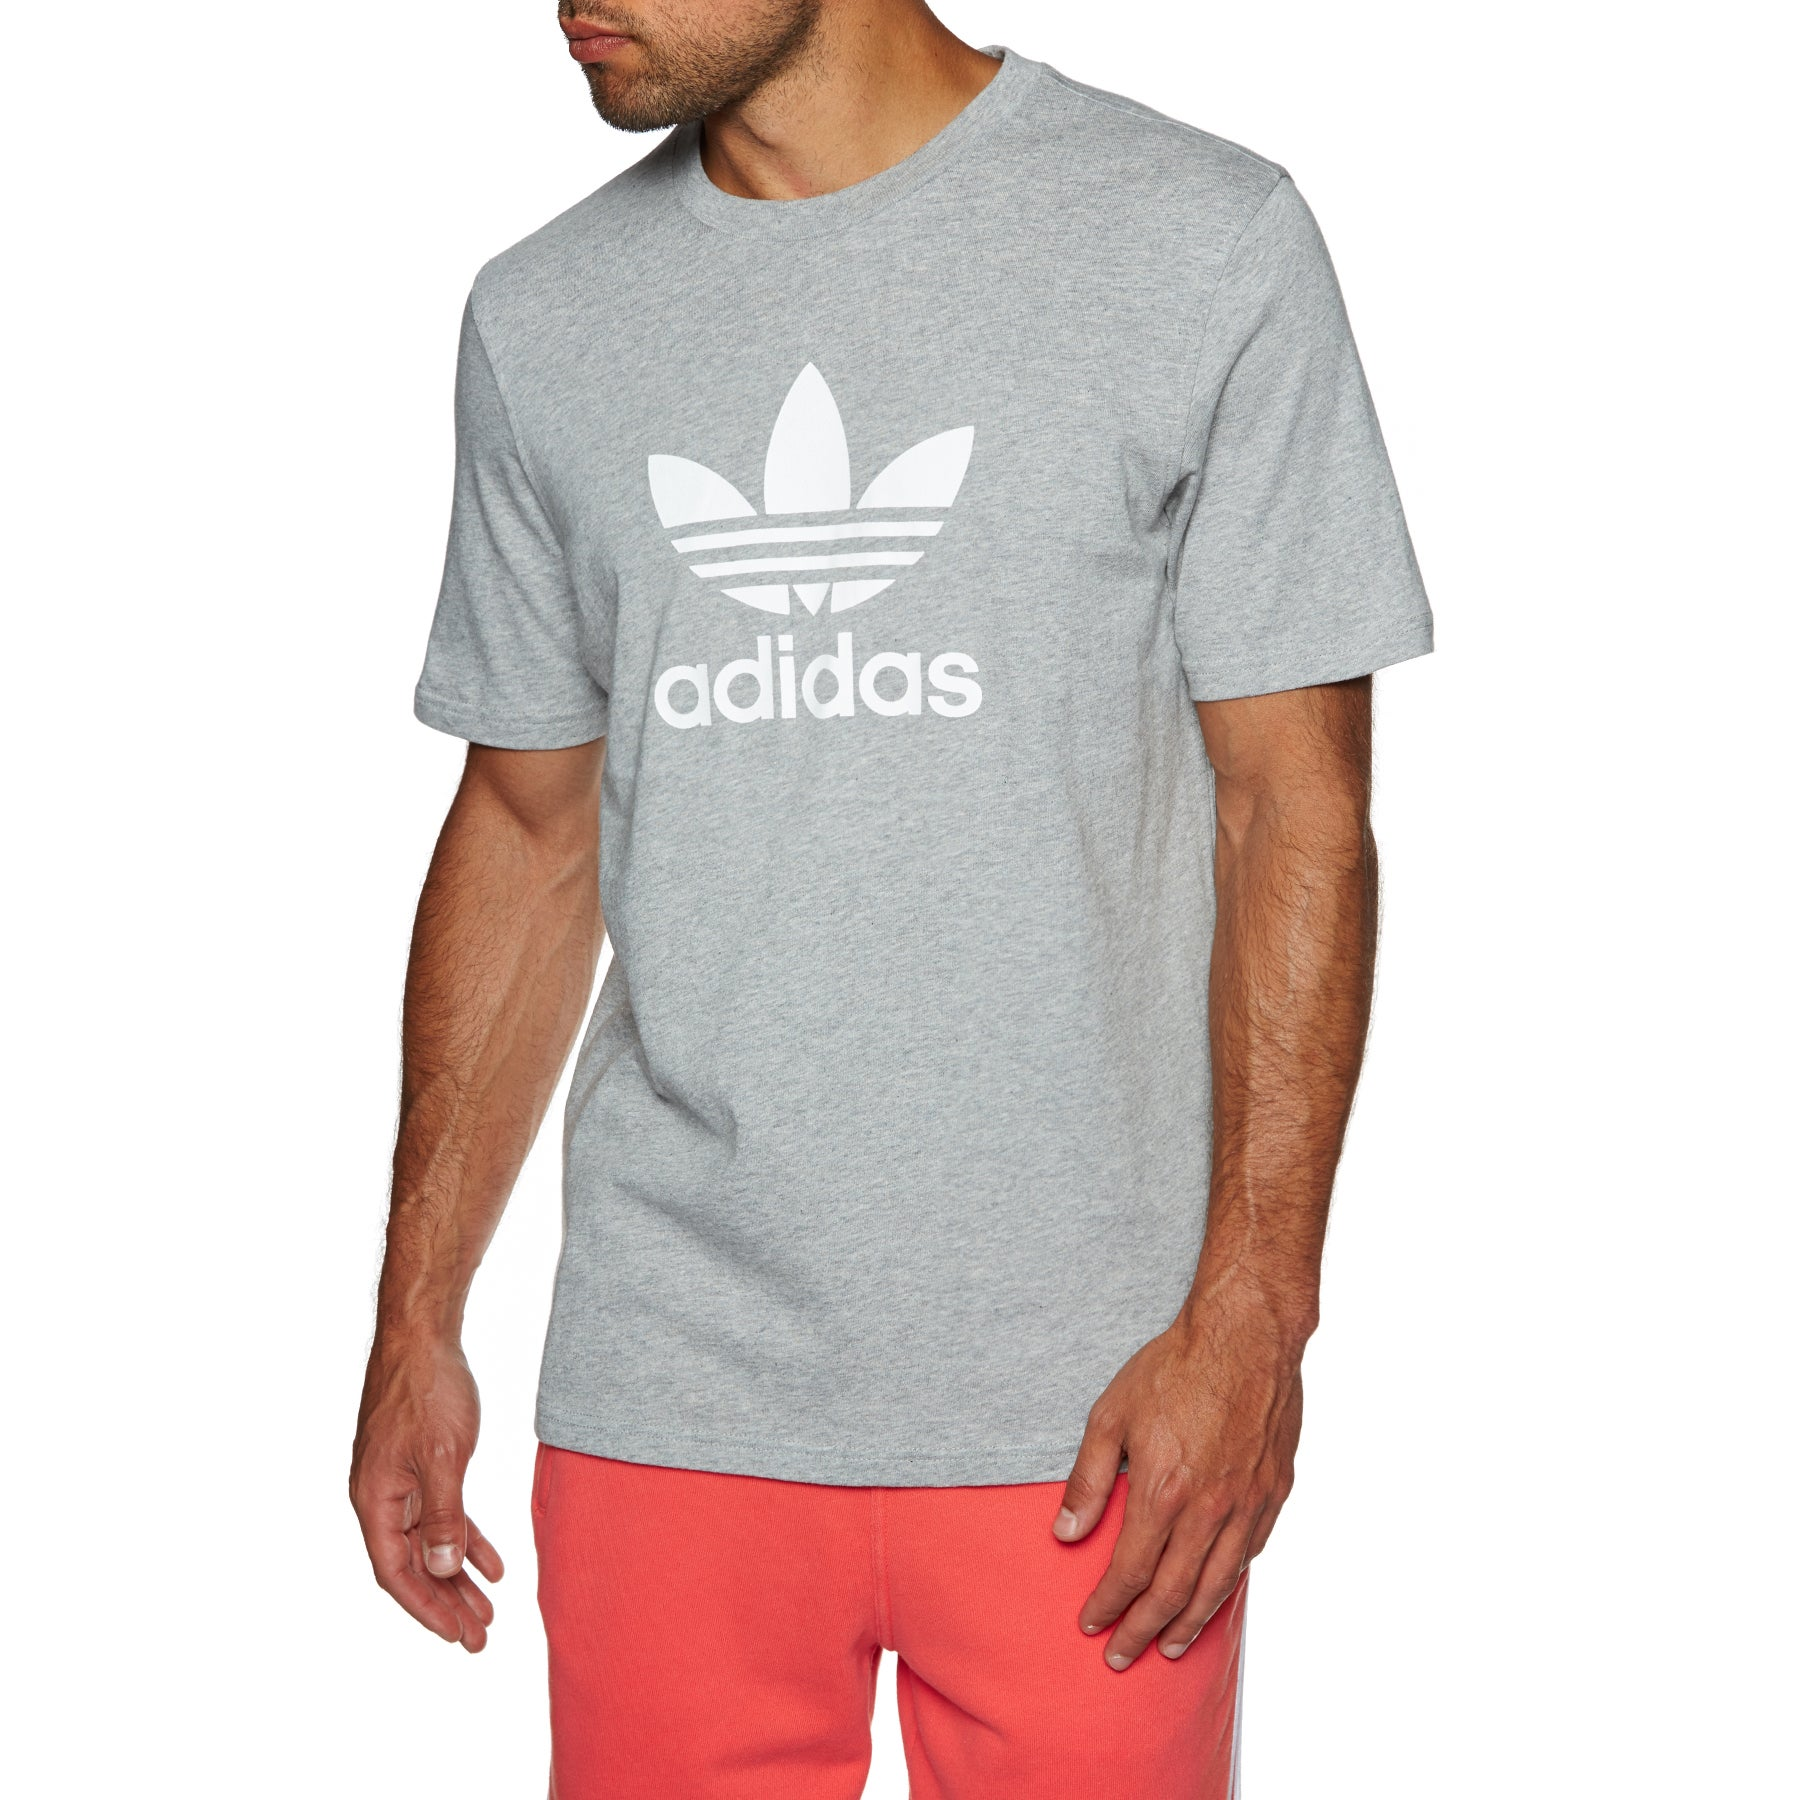 Camiseta de manga corta Adidas Originals Trefoil - Medium Grey Heather